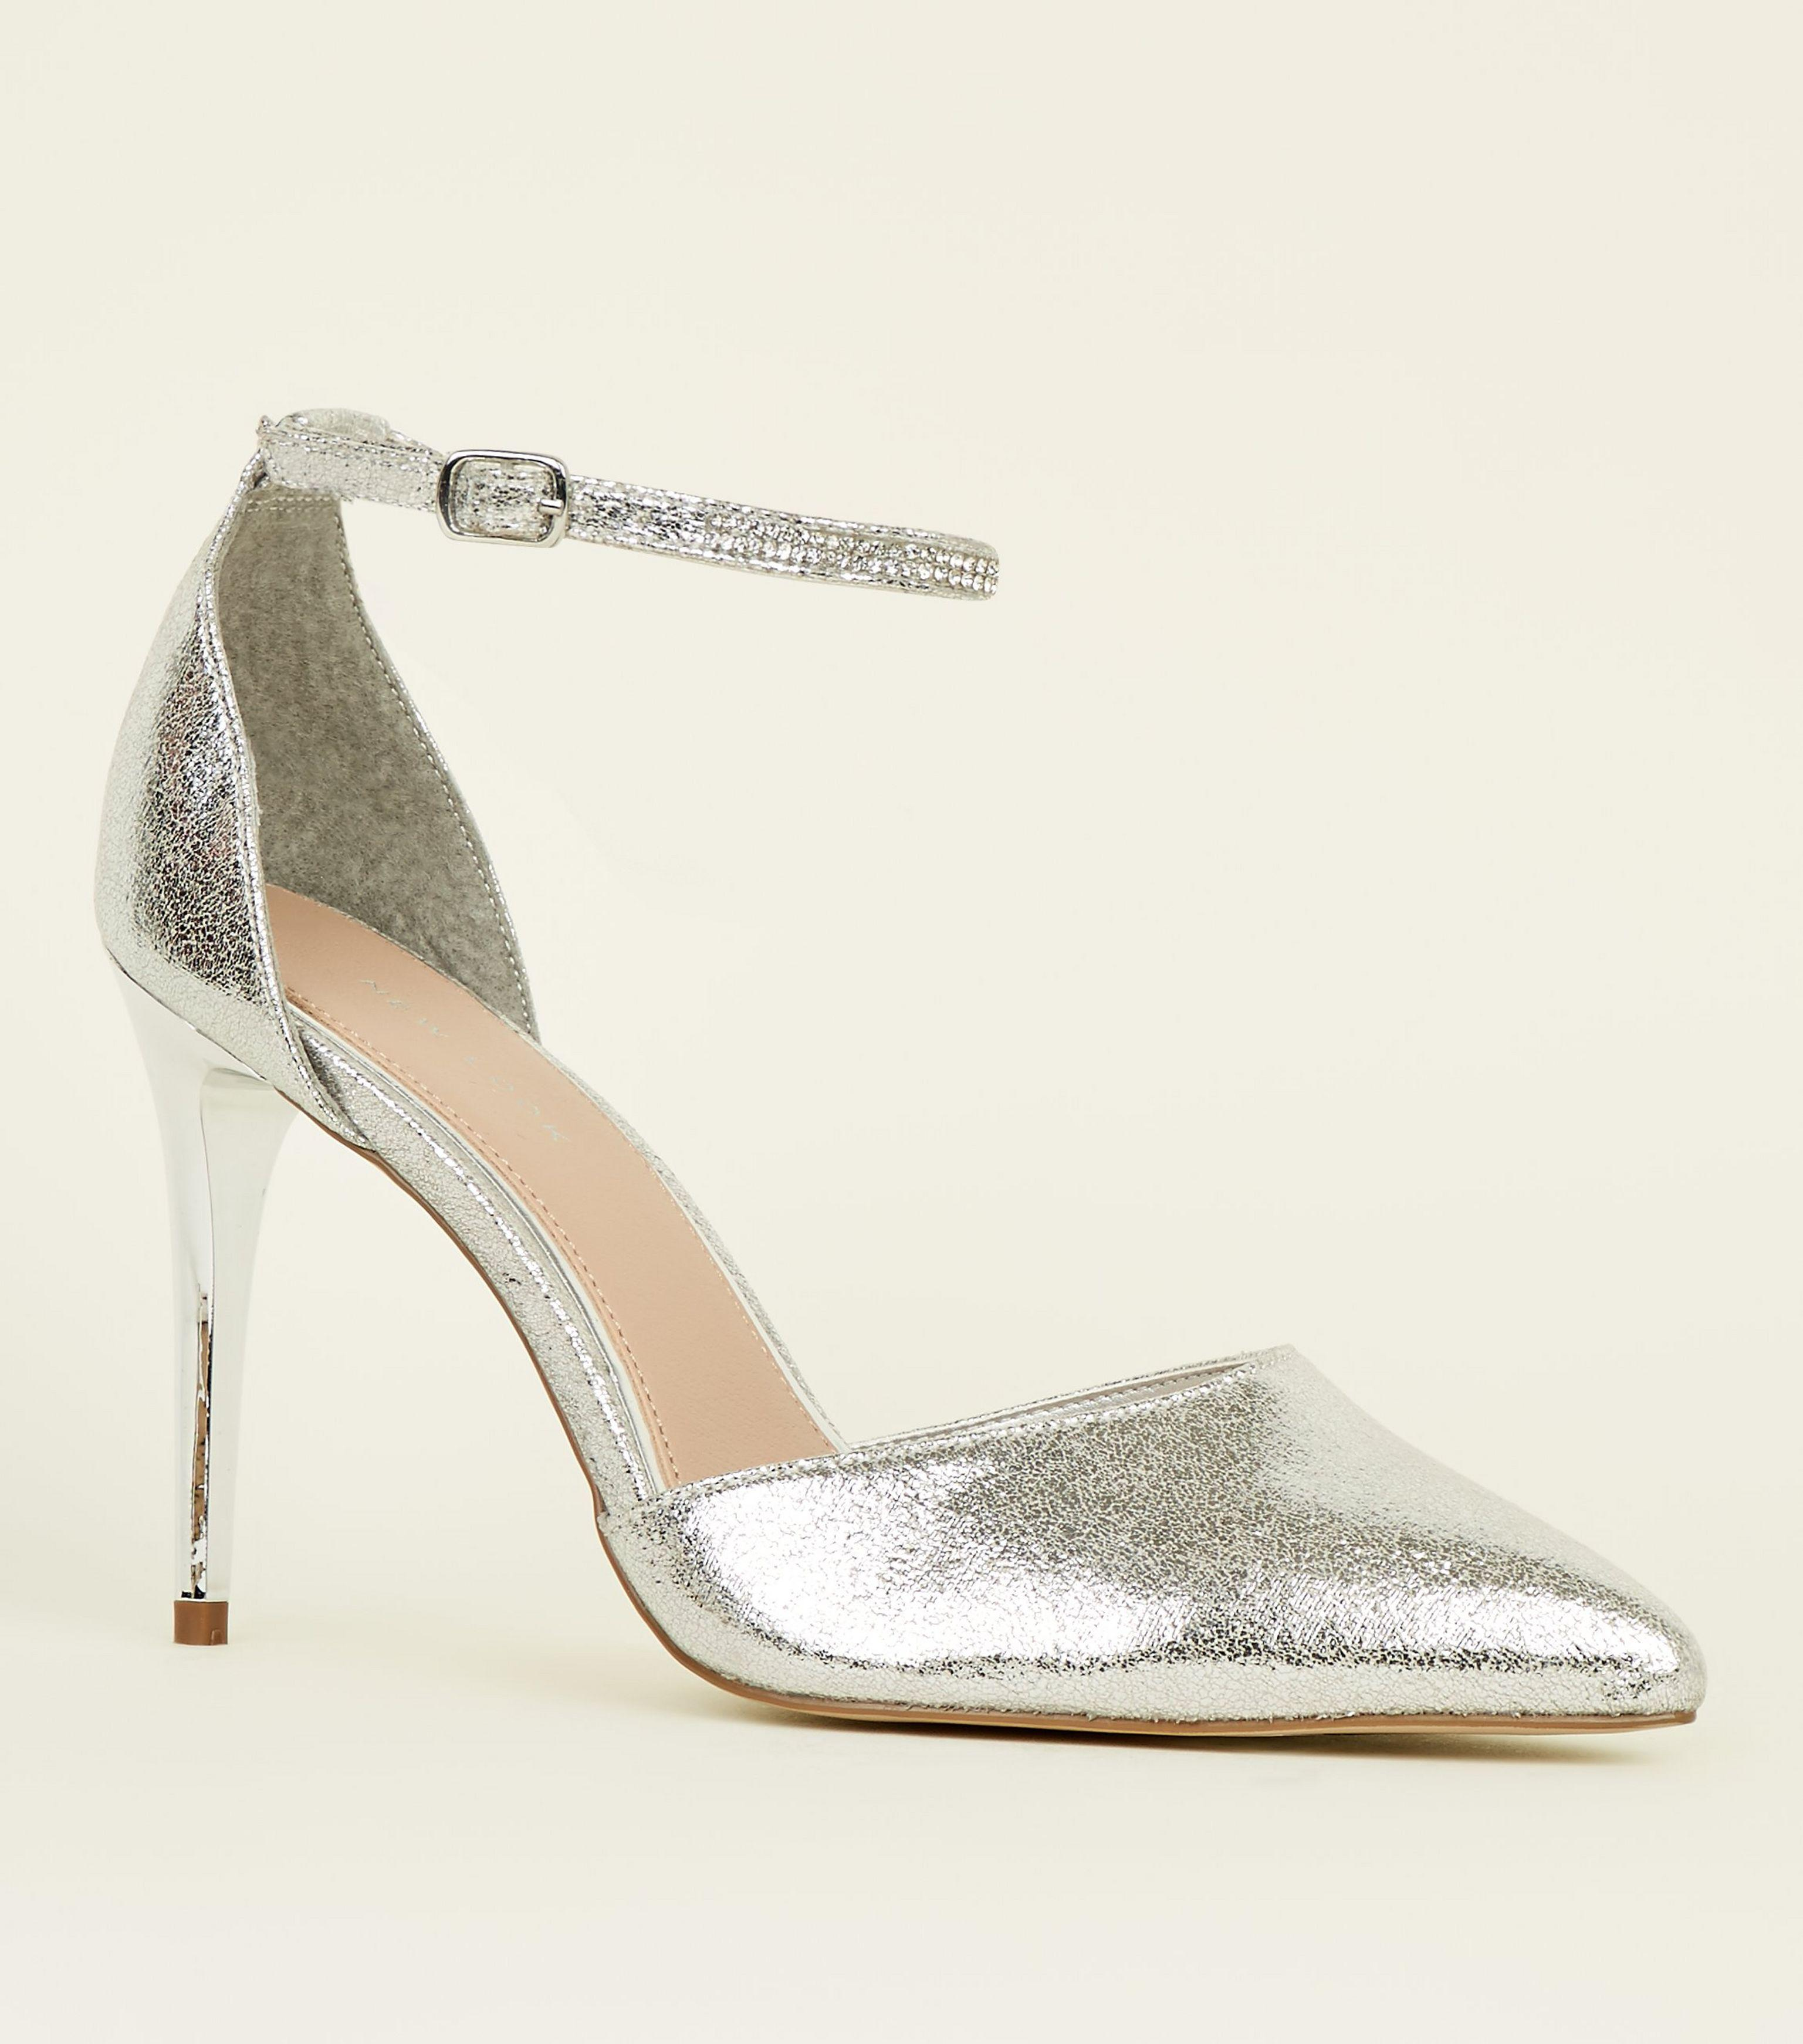 d5a0afead9 New Look Silver Diamanté Strap Pointed Stiletto Heels in Metallic - Lyst